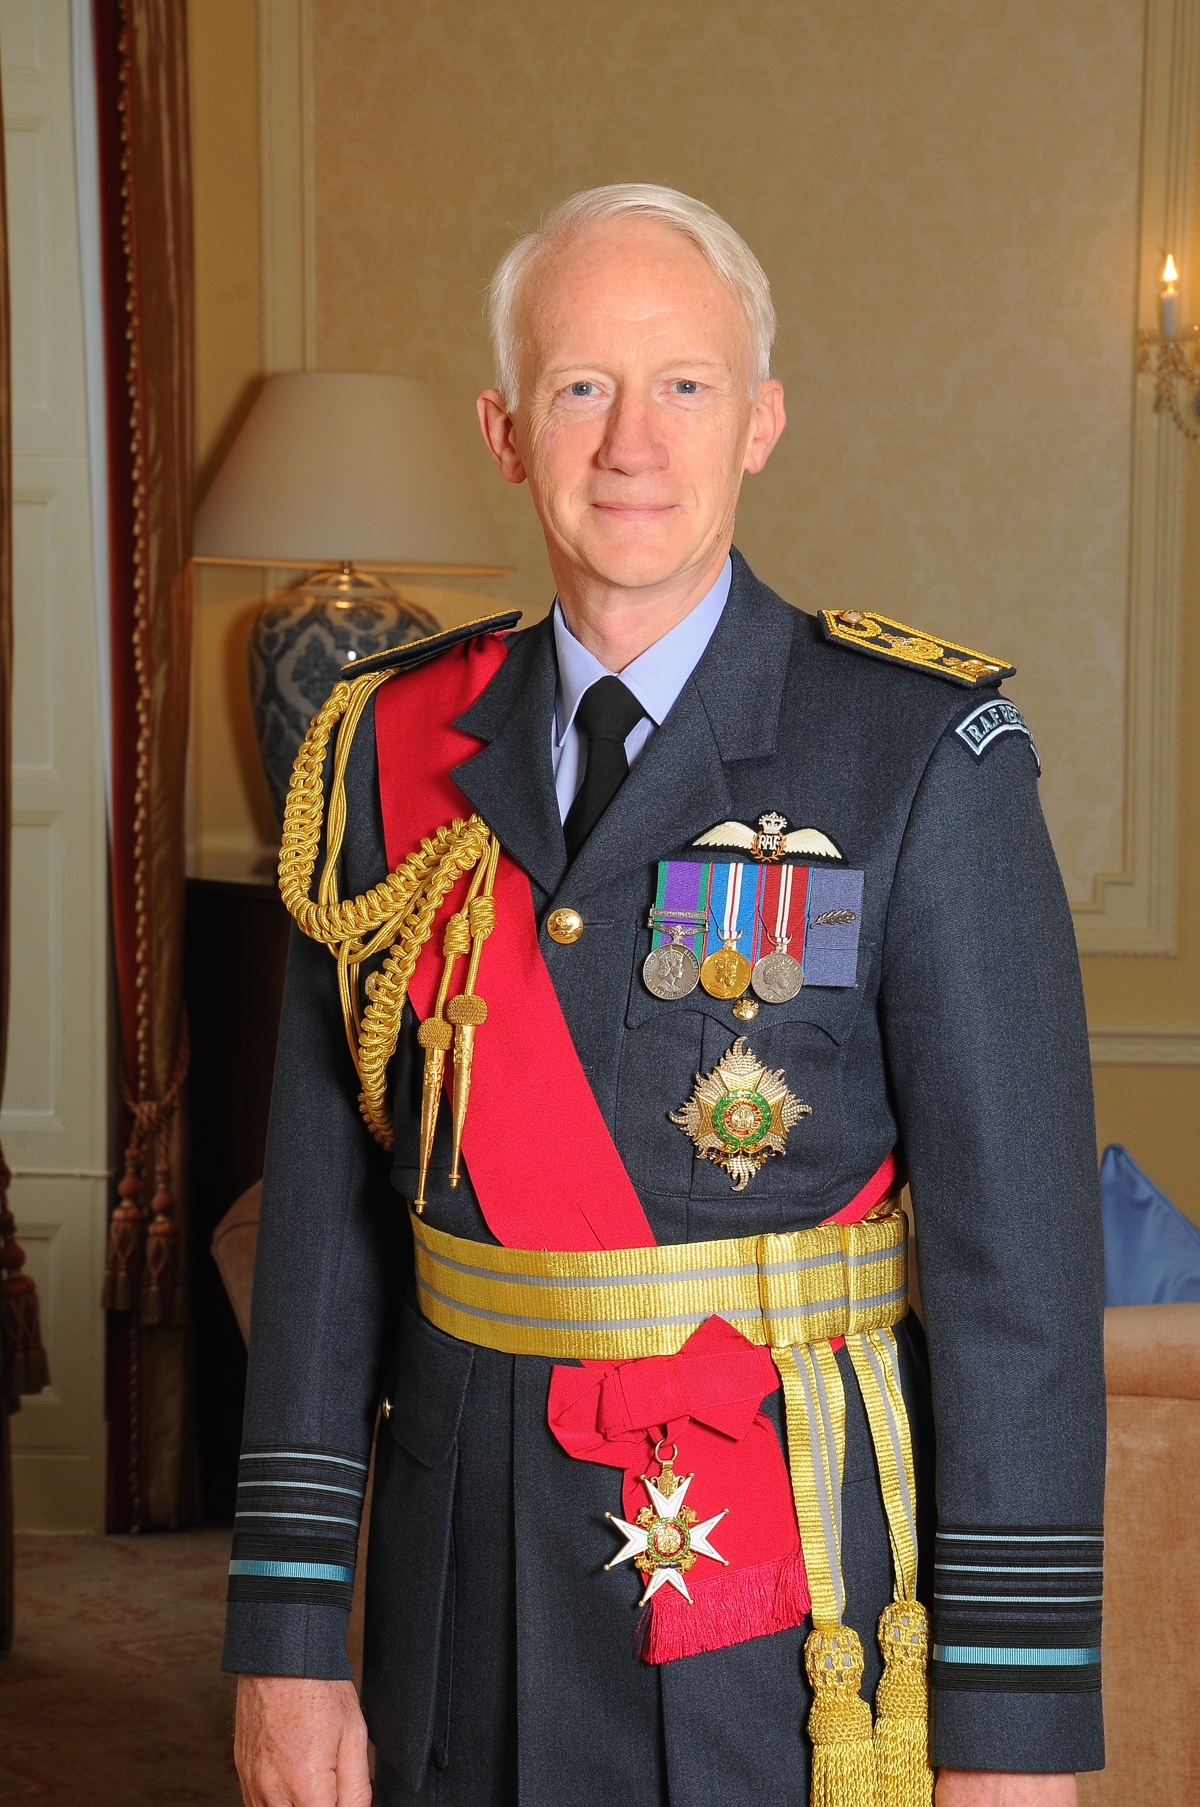 Image of His Excellency Air Chief Marshal Sir Stephen Dalton